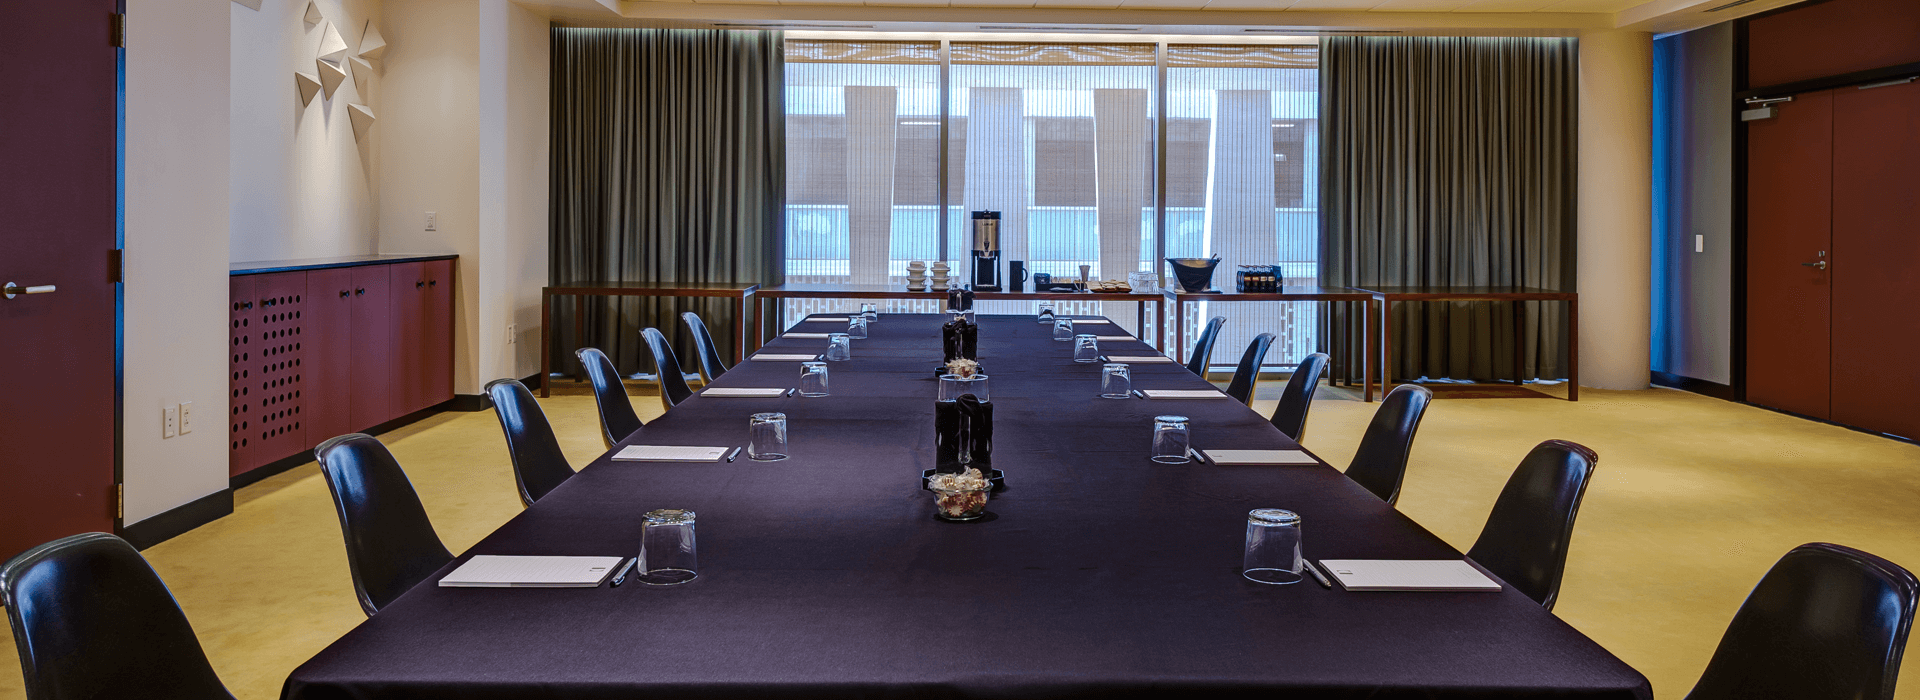 Meeting room table with chairs, with a window view at the end.